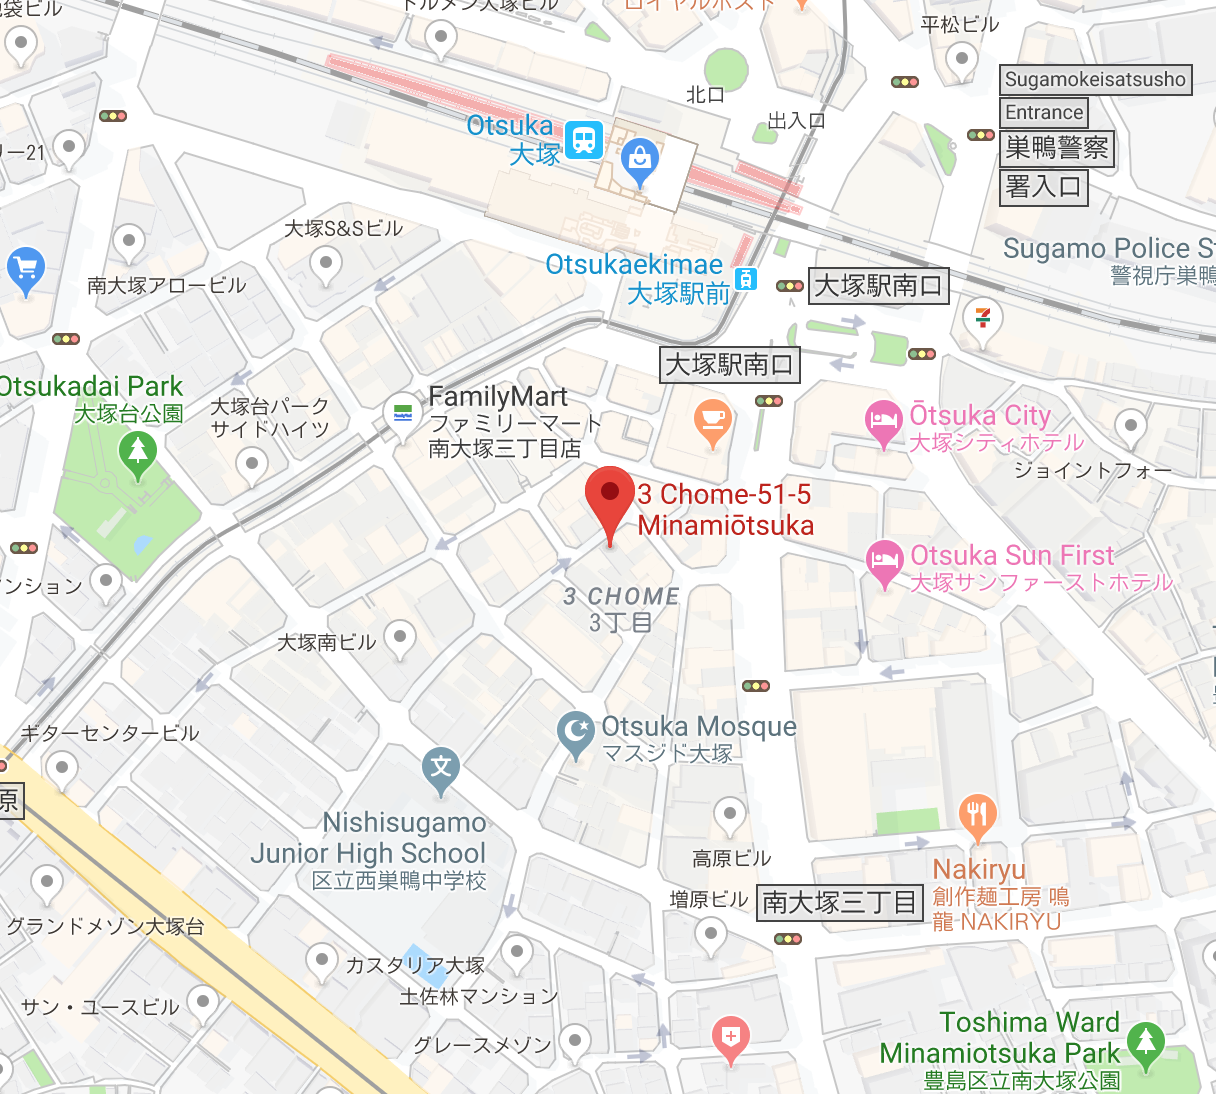 Our office moved to Otsuka(大塚)